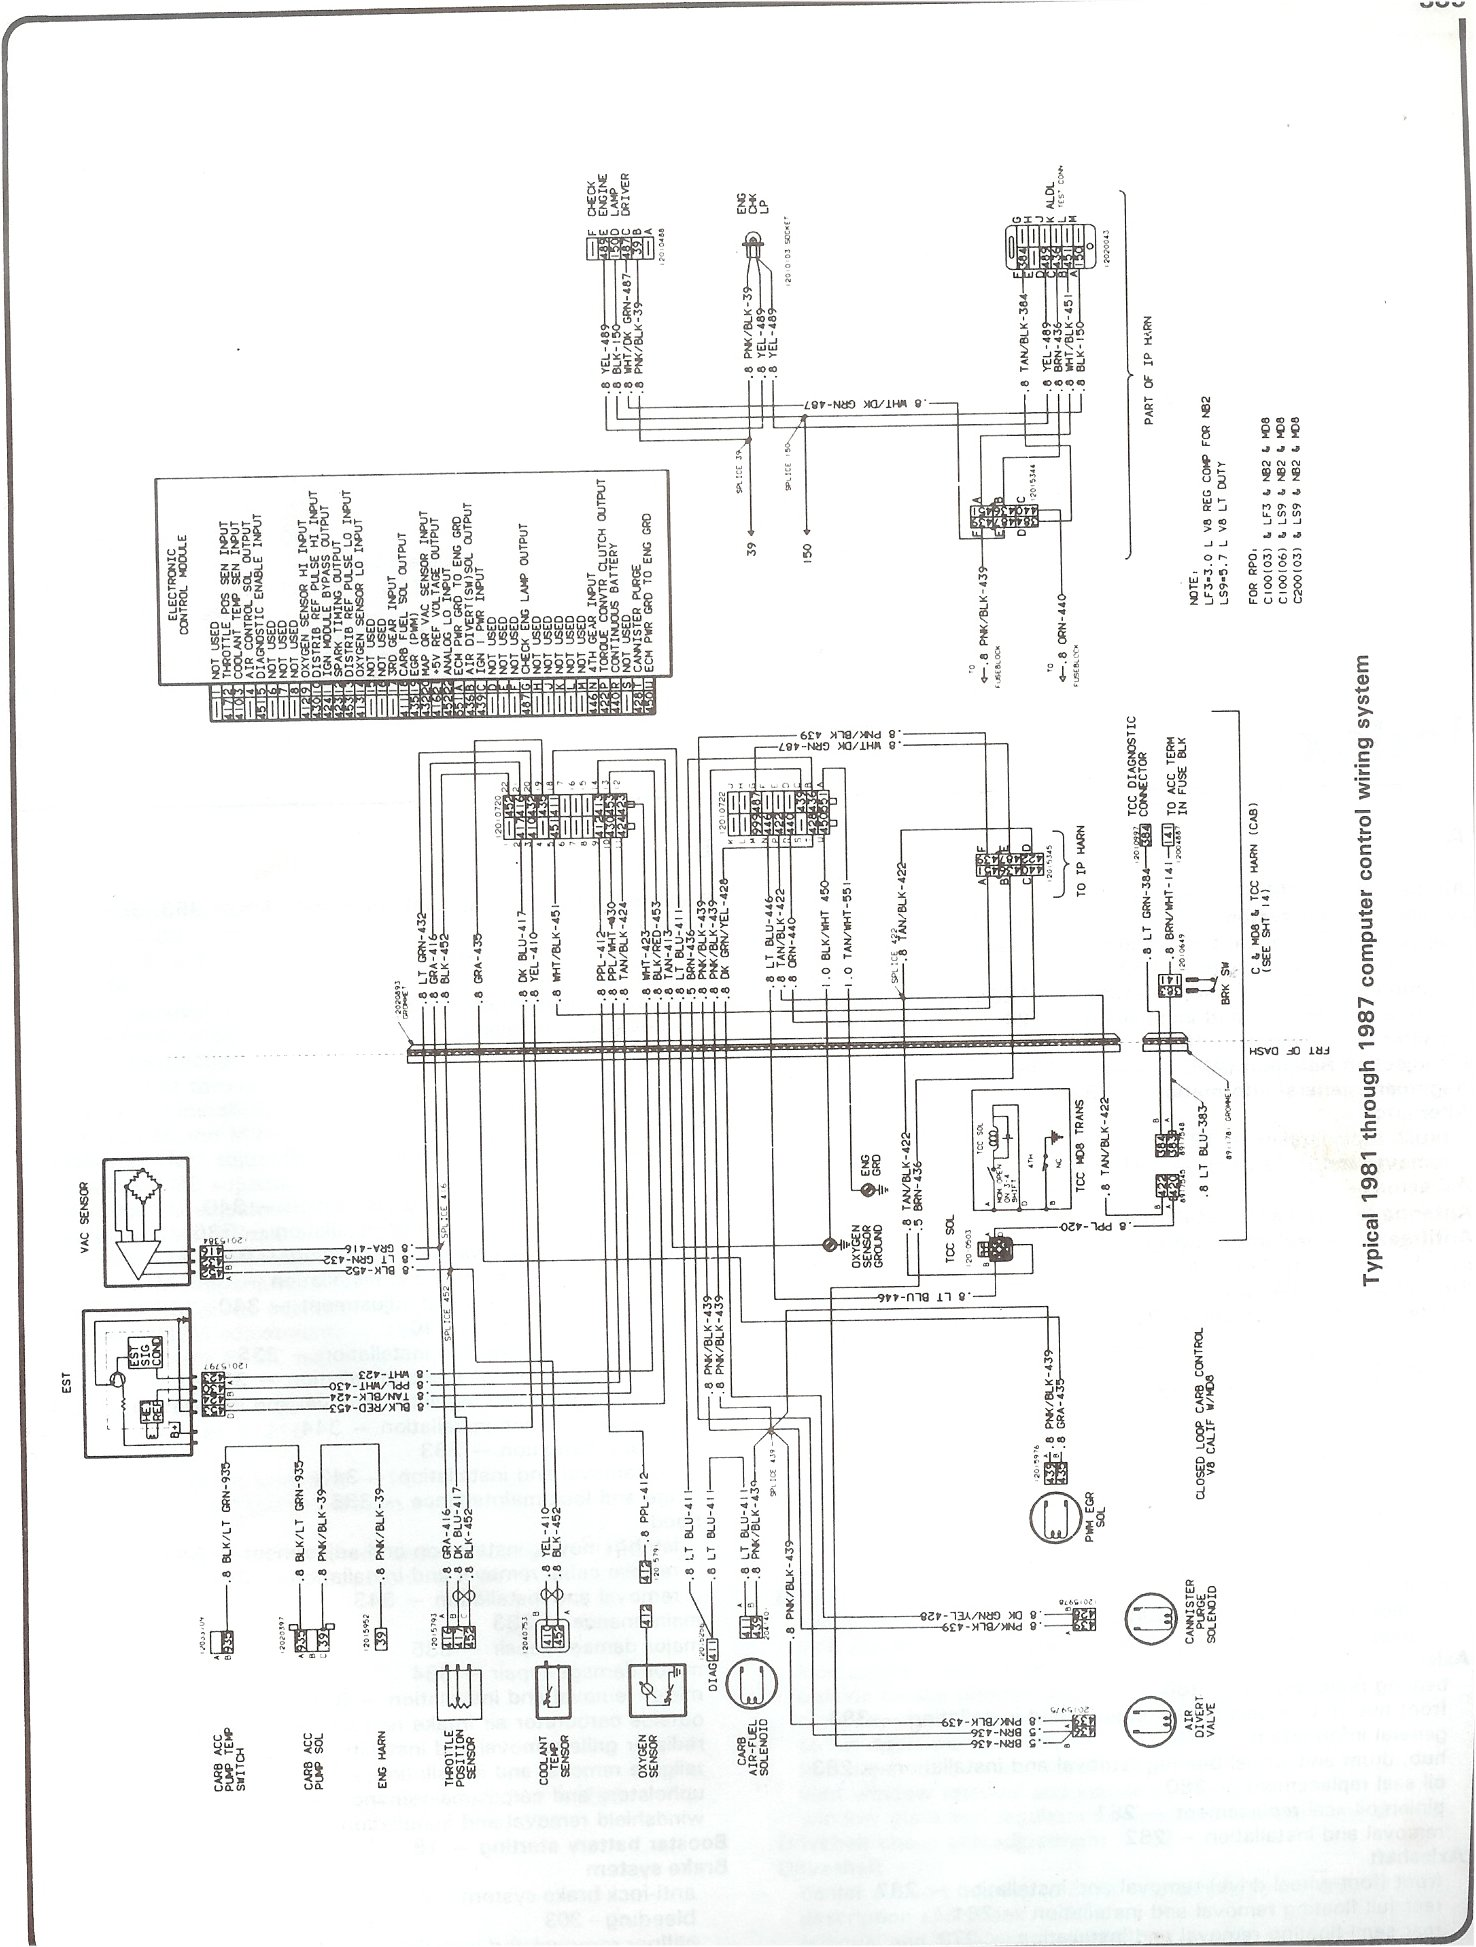 81 87_computer_control_wiring complete 73 87 wiring diagrams chevrolet ignition wiring diagram at mifinder.co